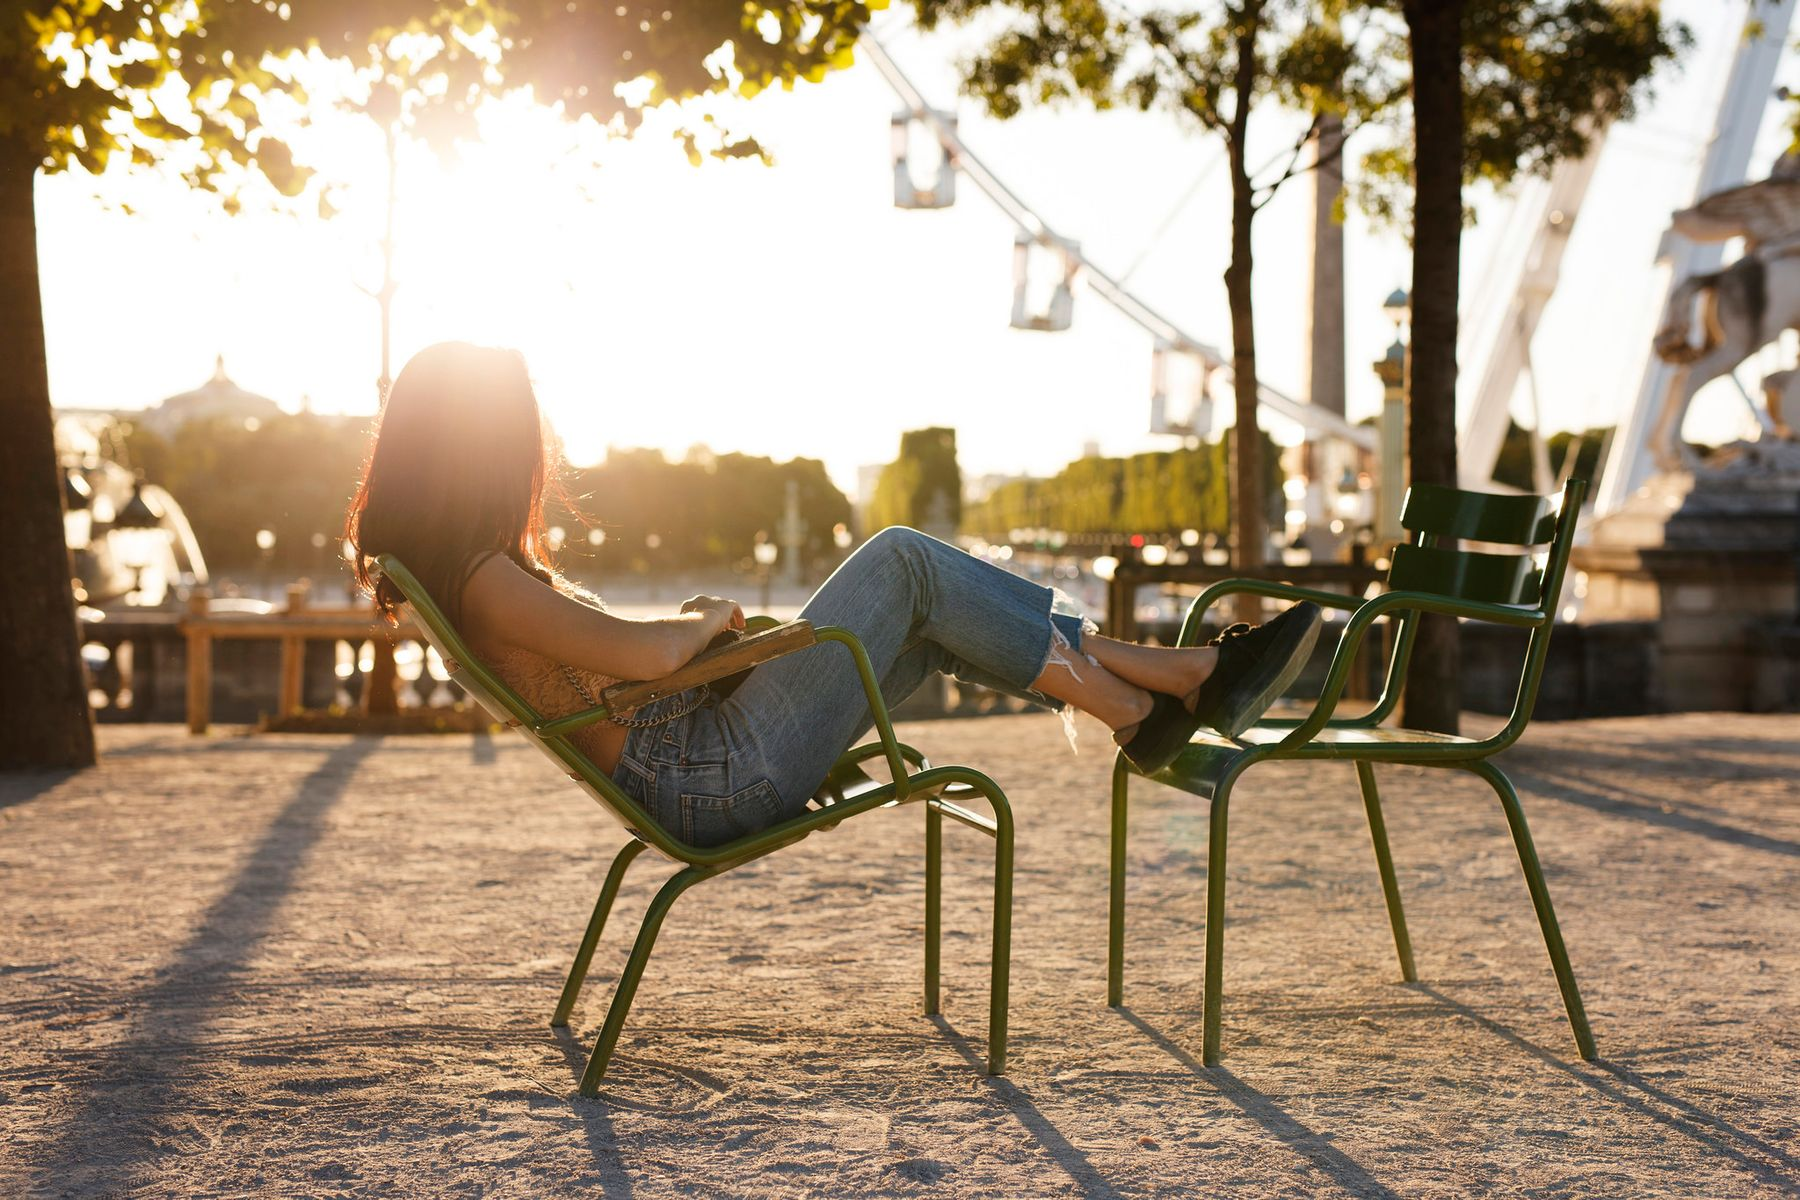 Young woman leaning back in a chair with her feet on another chair, watching a ferris wheel as the sun sets.